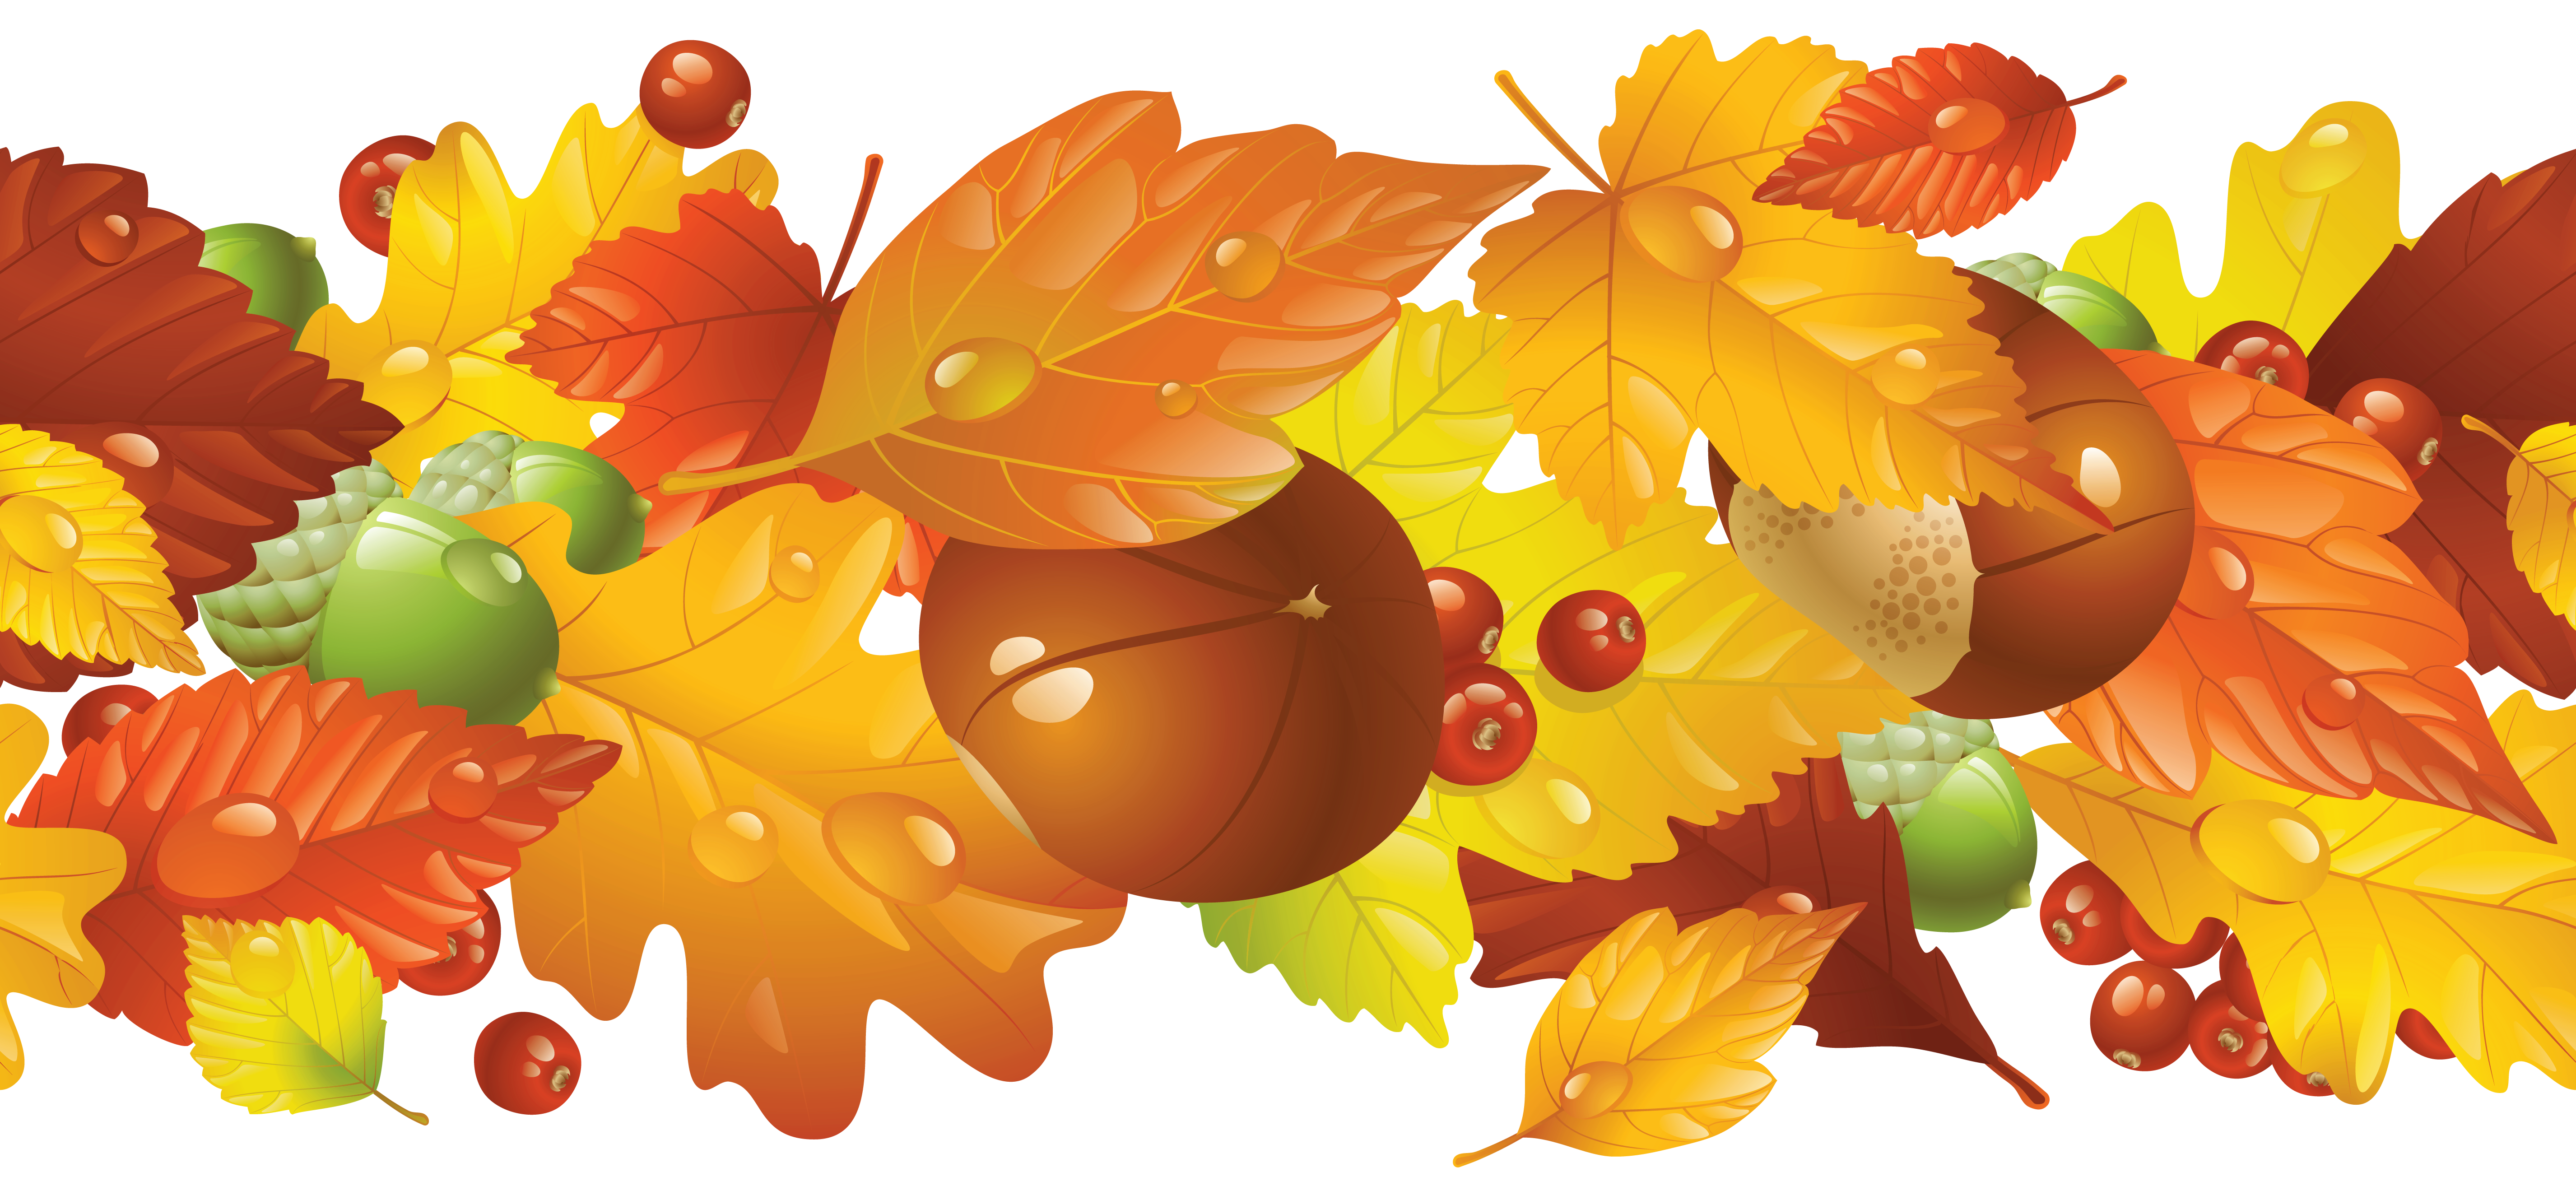 Transparent clipart picture gallery. Fall border png